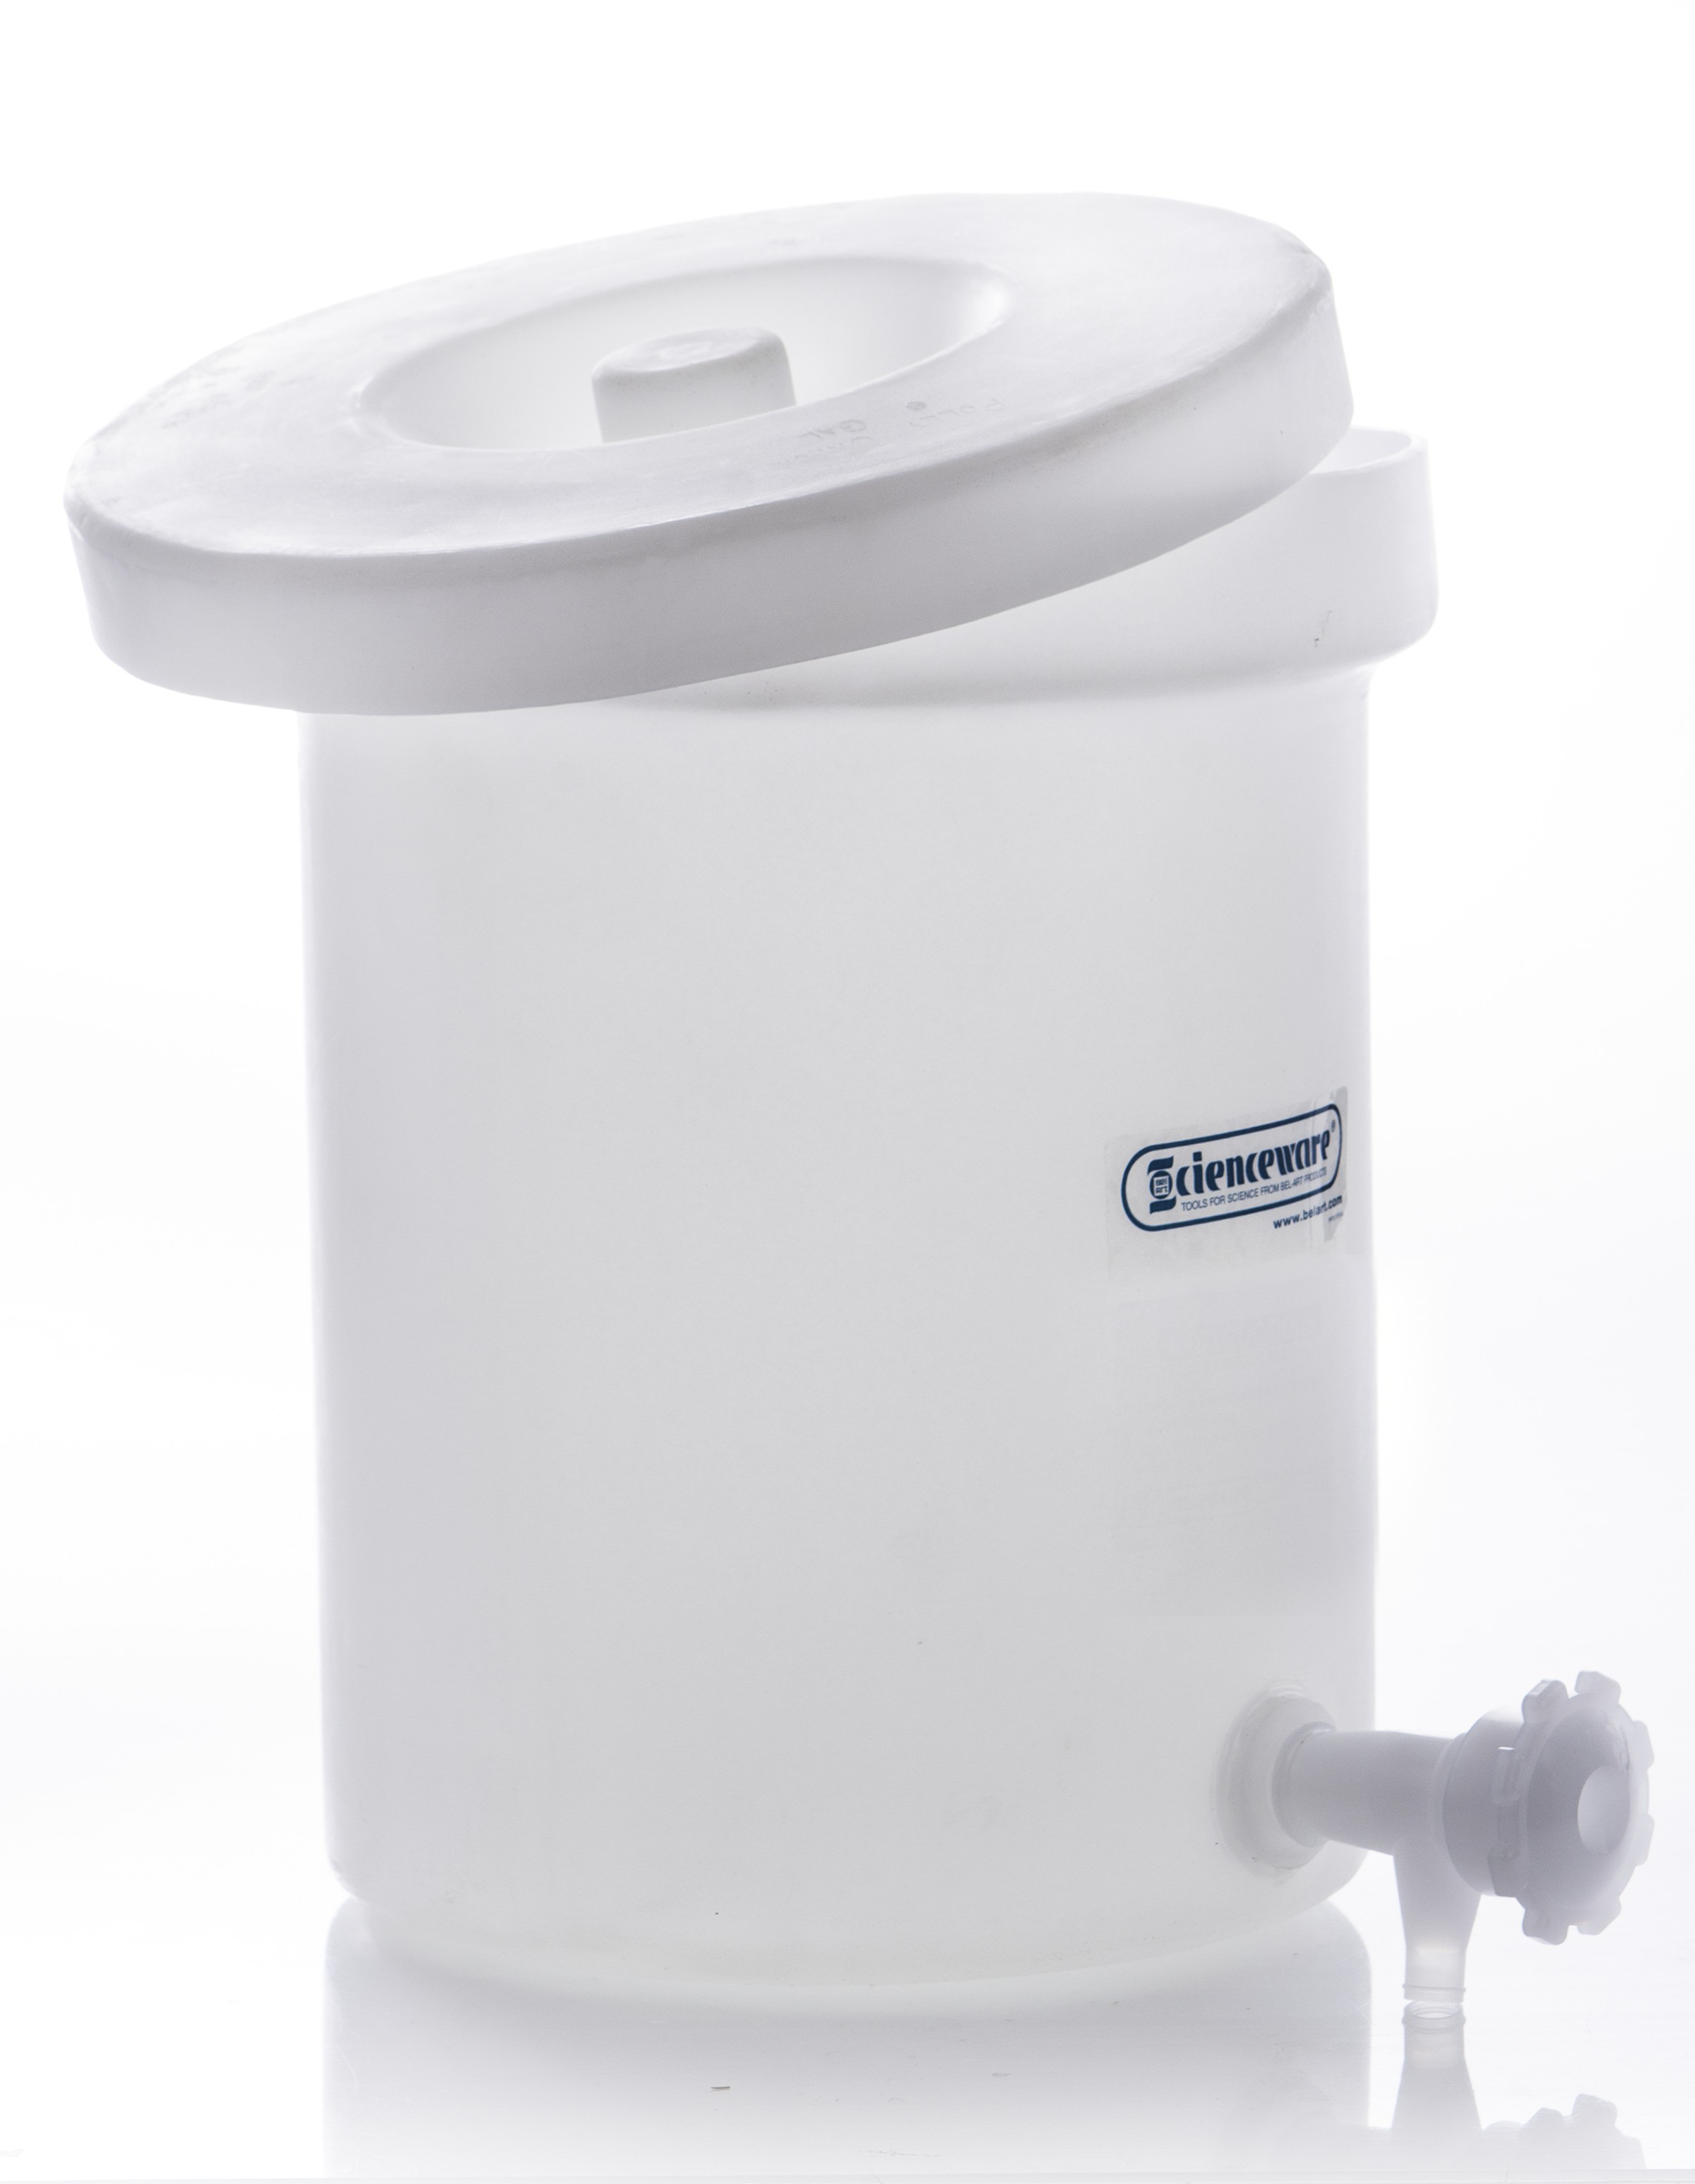 Bel-Art Polly-Crock Polyethylene Tank with Lid and Faucet